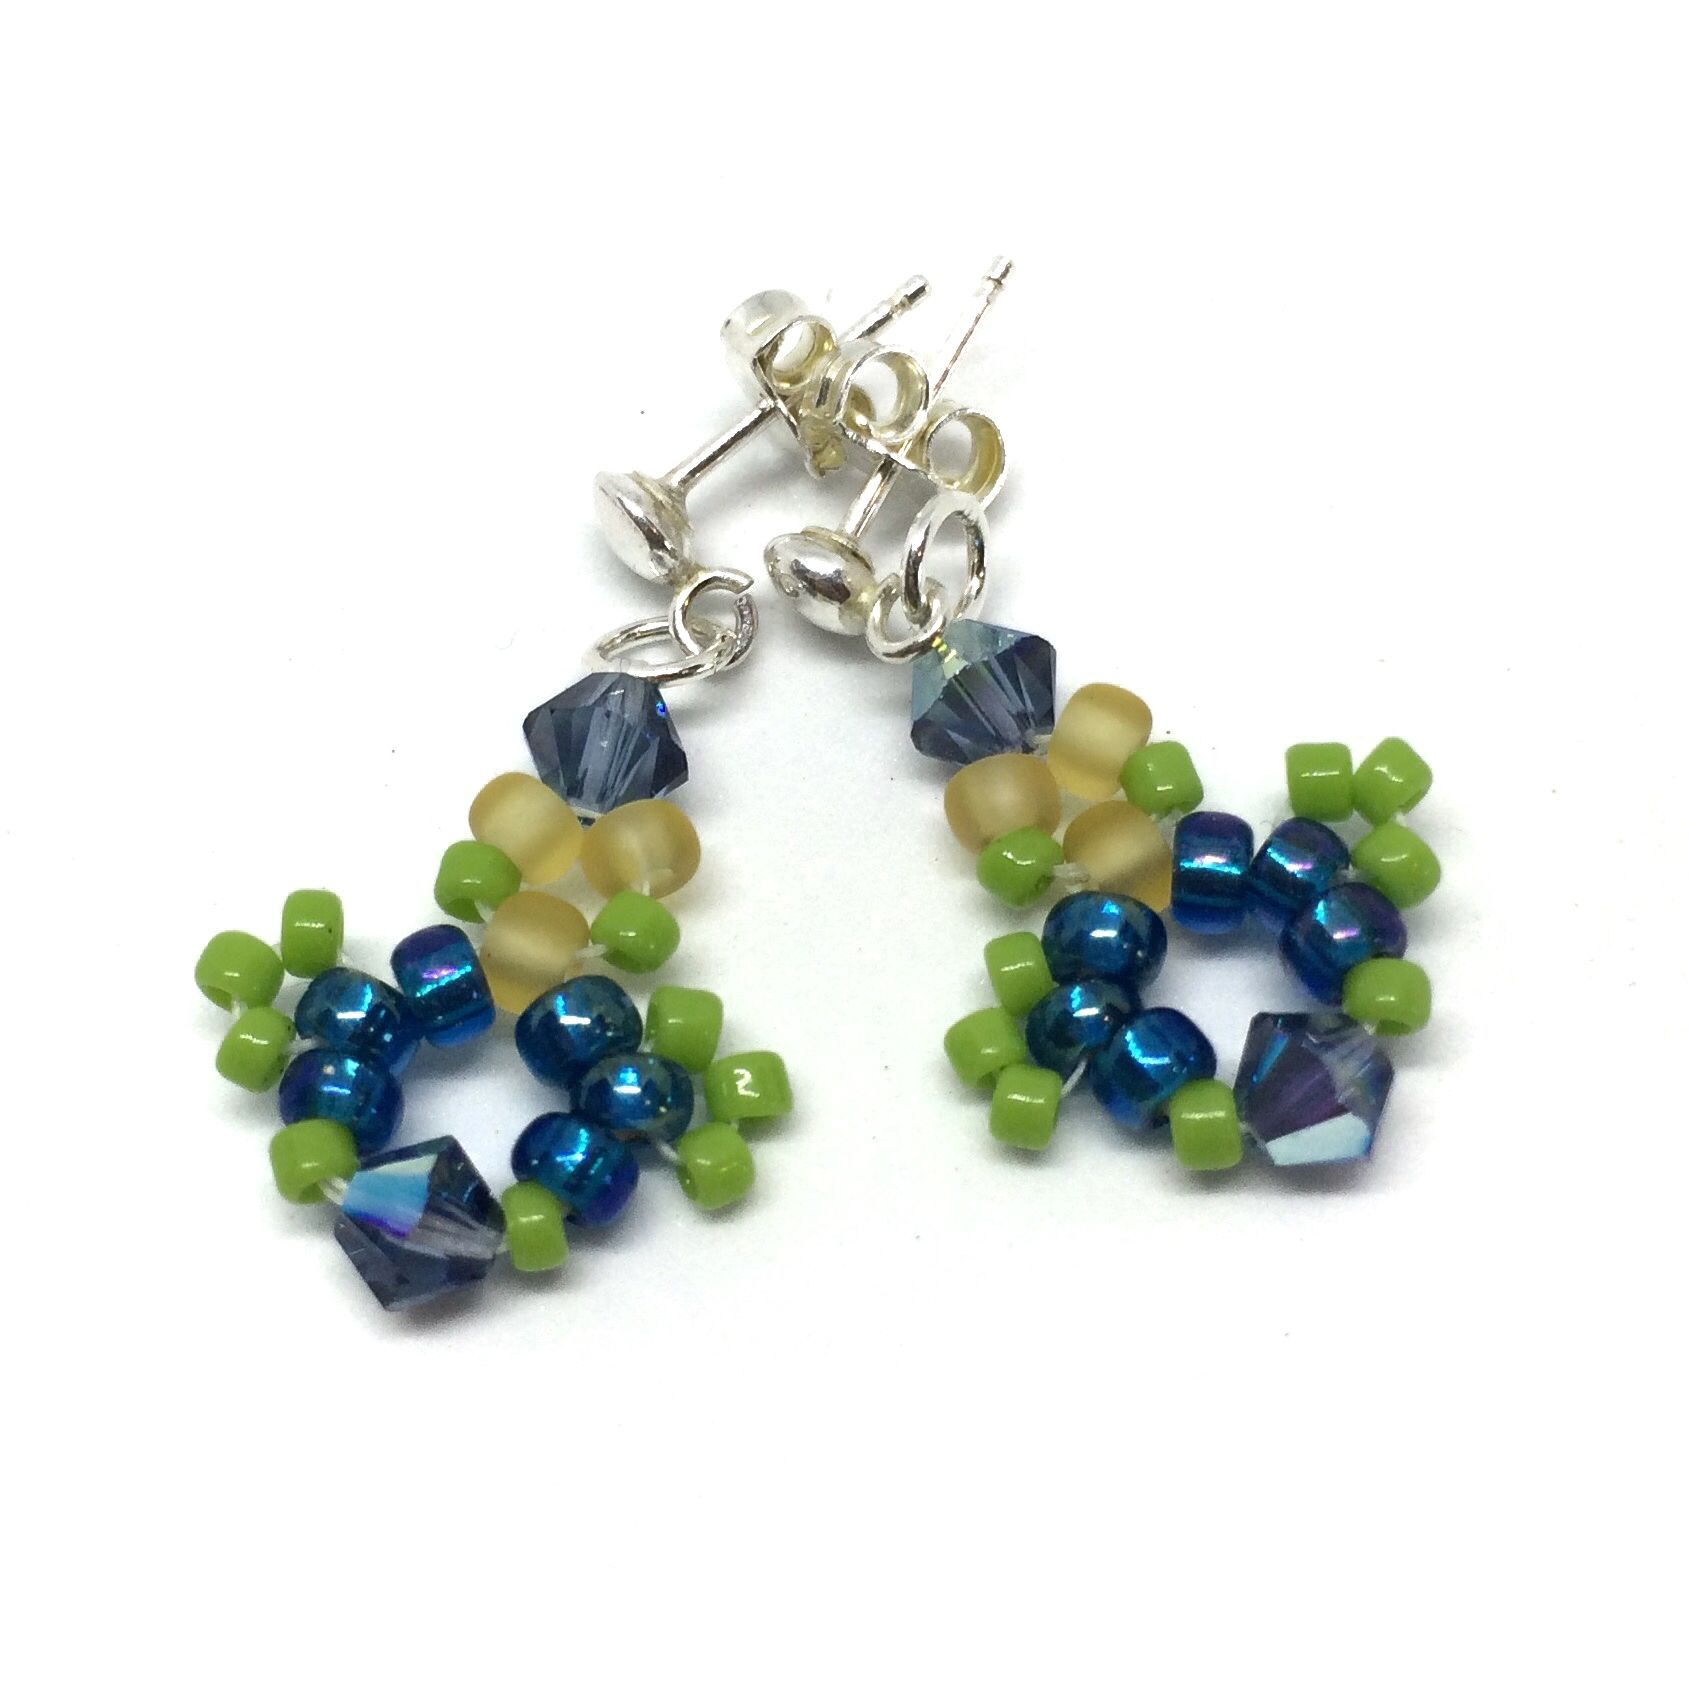 f17df47f79cf38 Lime Green and Aqua Crystal Sterling Silver Stud Earrings from ...